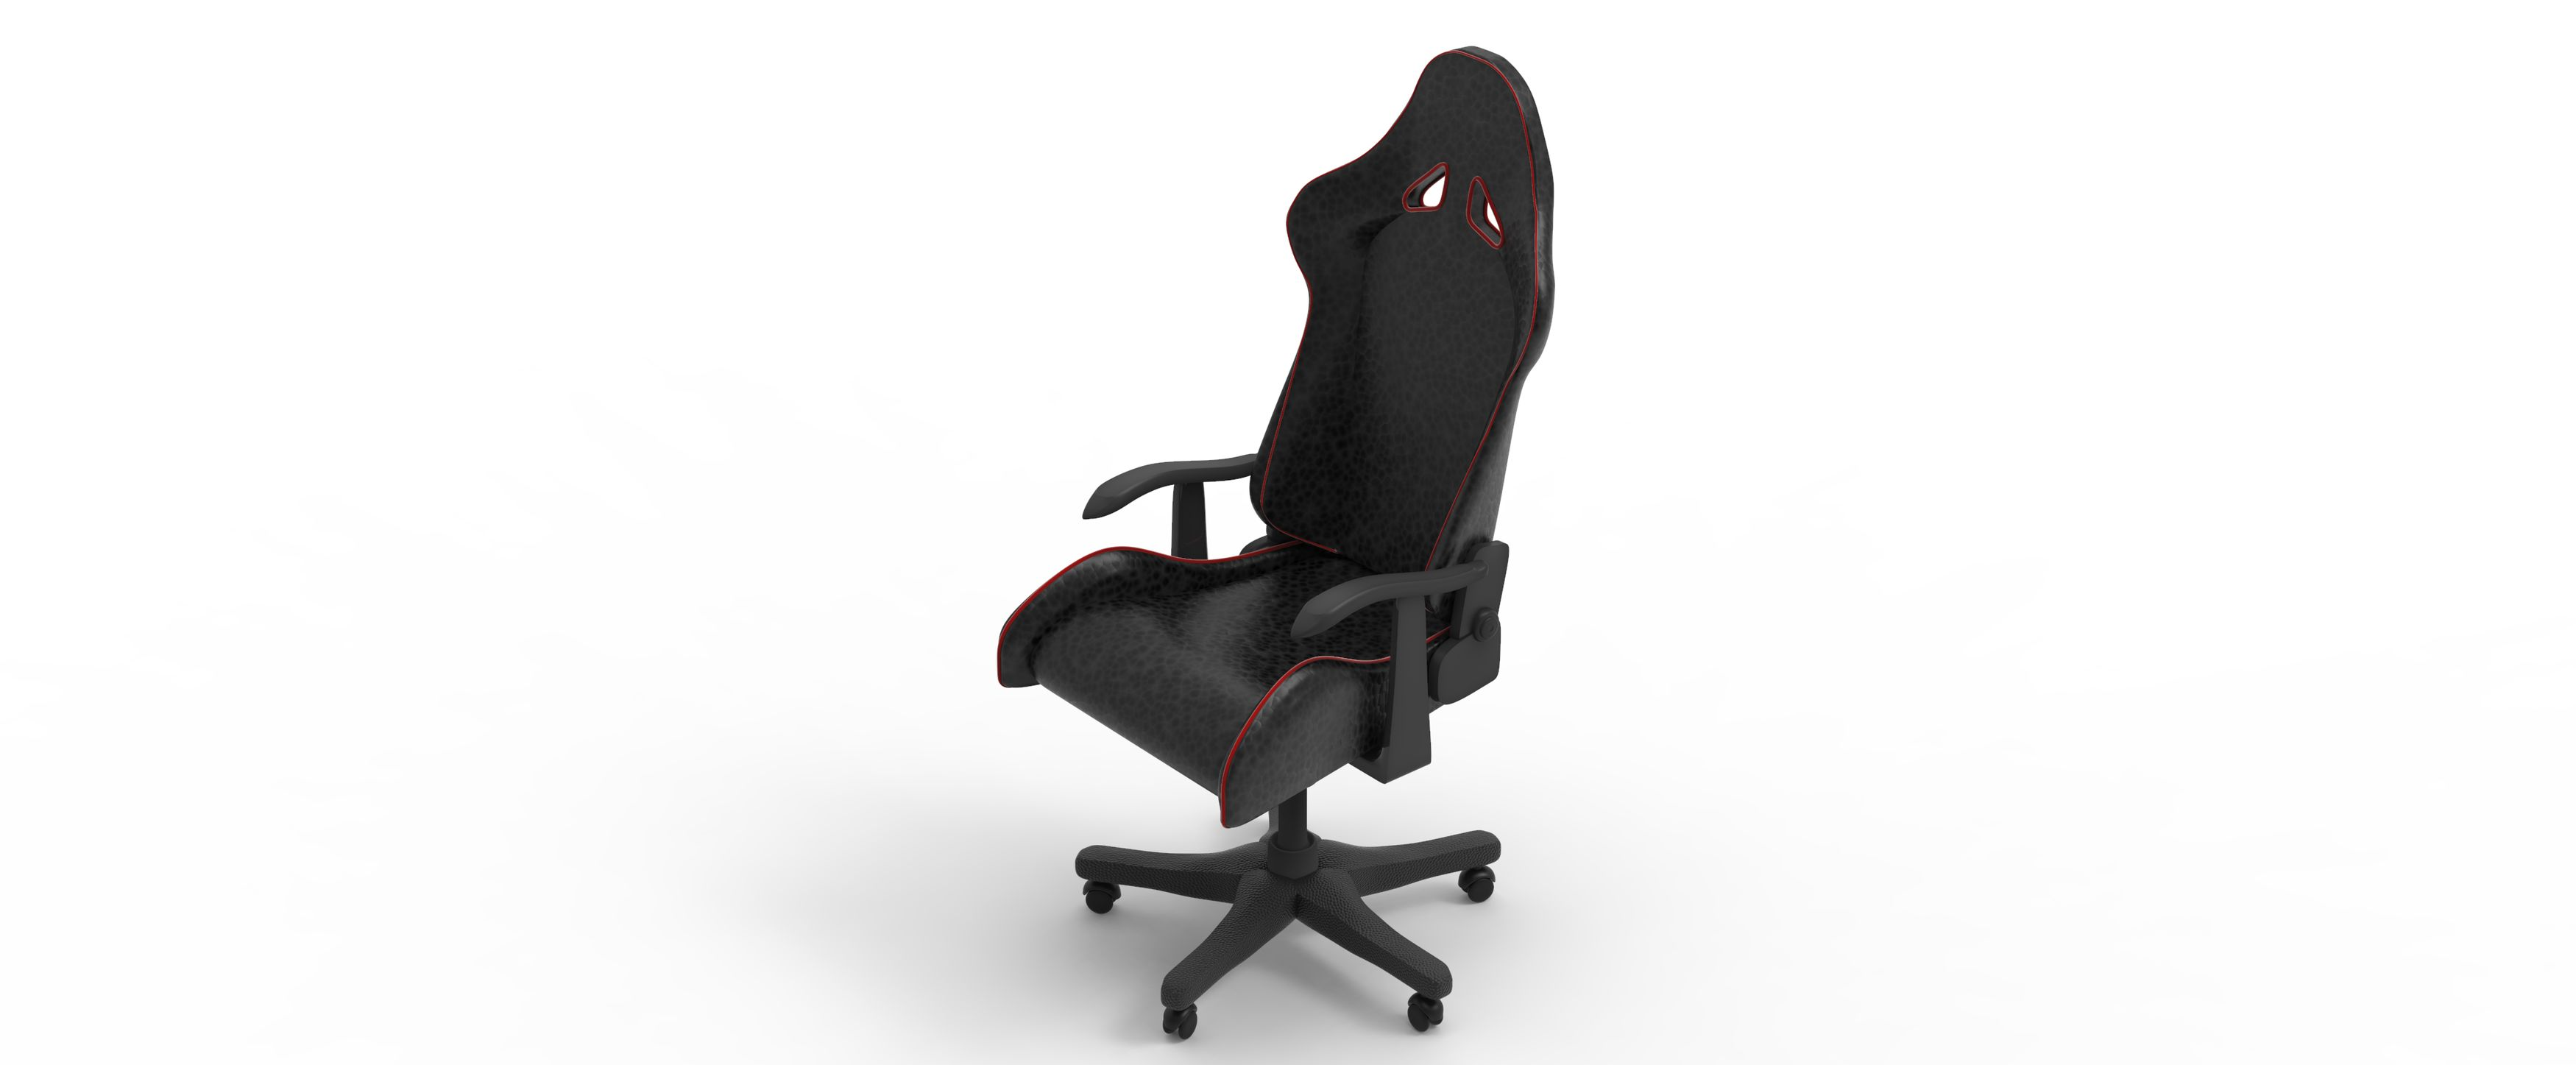 Gaming-chair-24-3500-3500